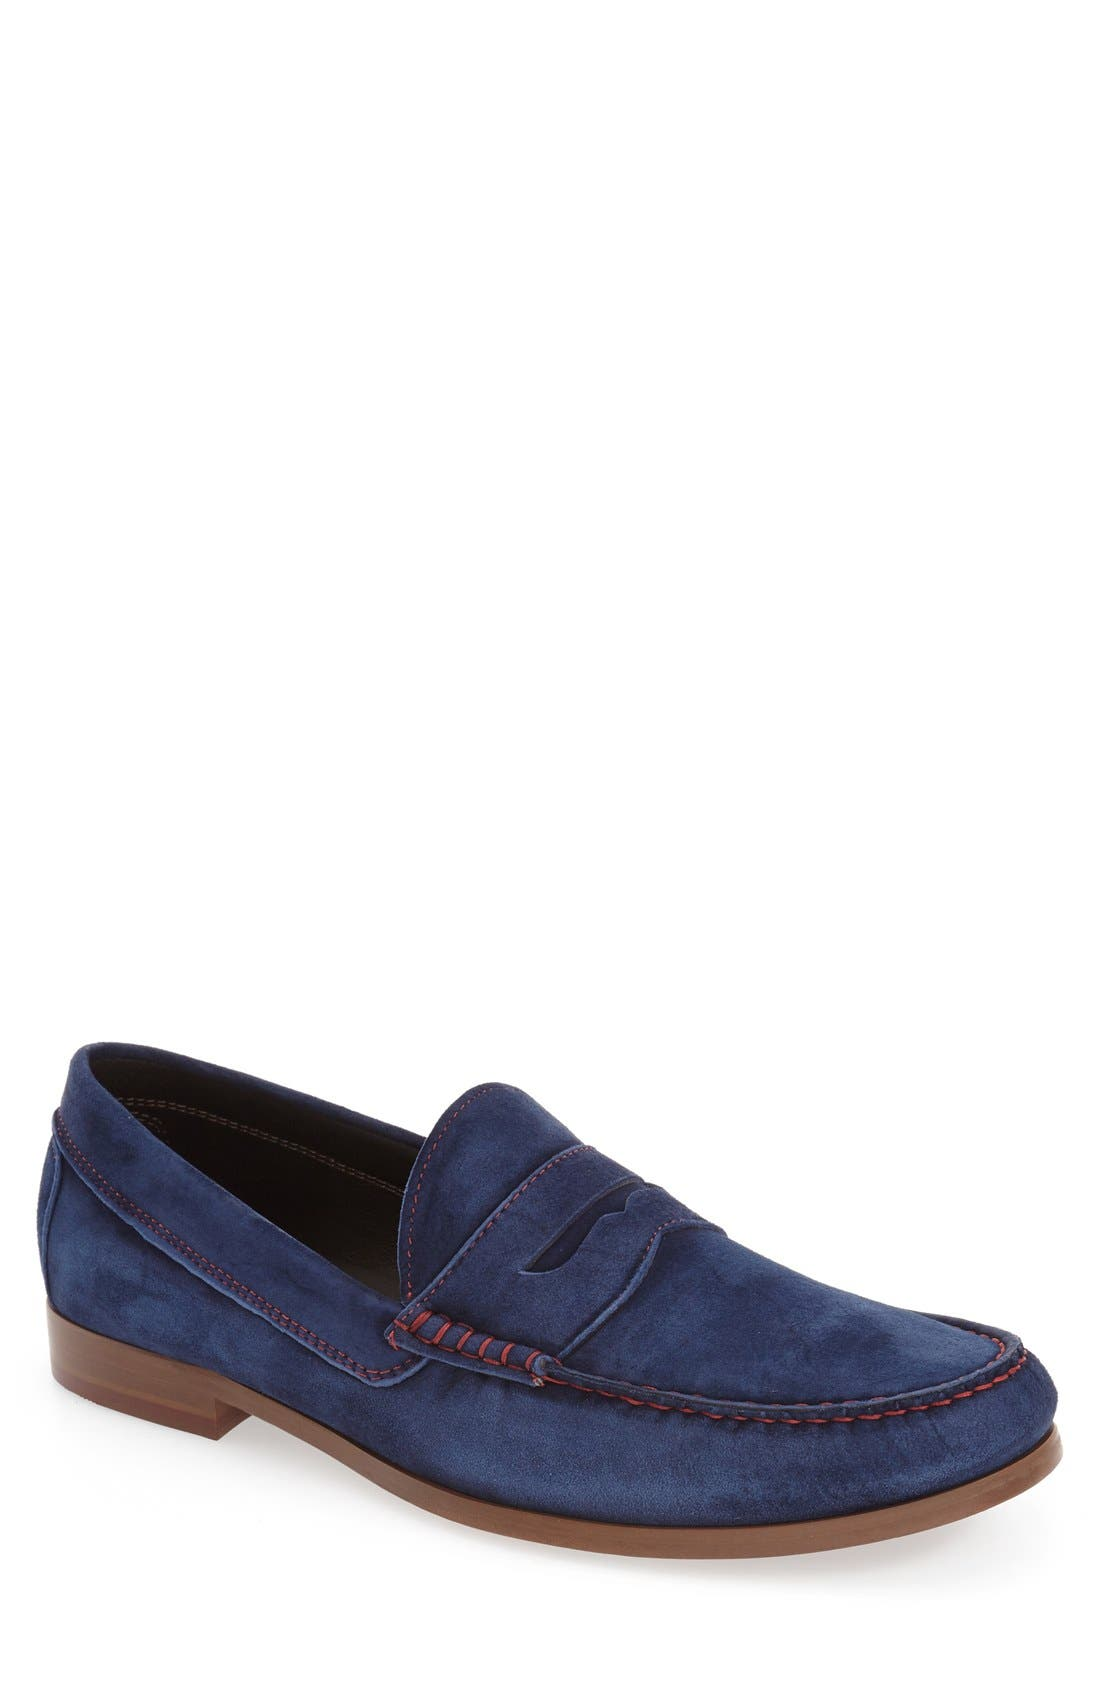 Nicola Penny Loafer,                             Main thumbnail 9, color,